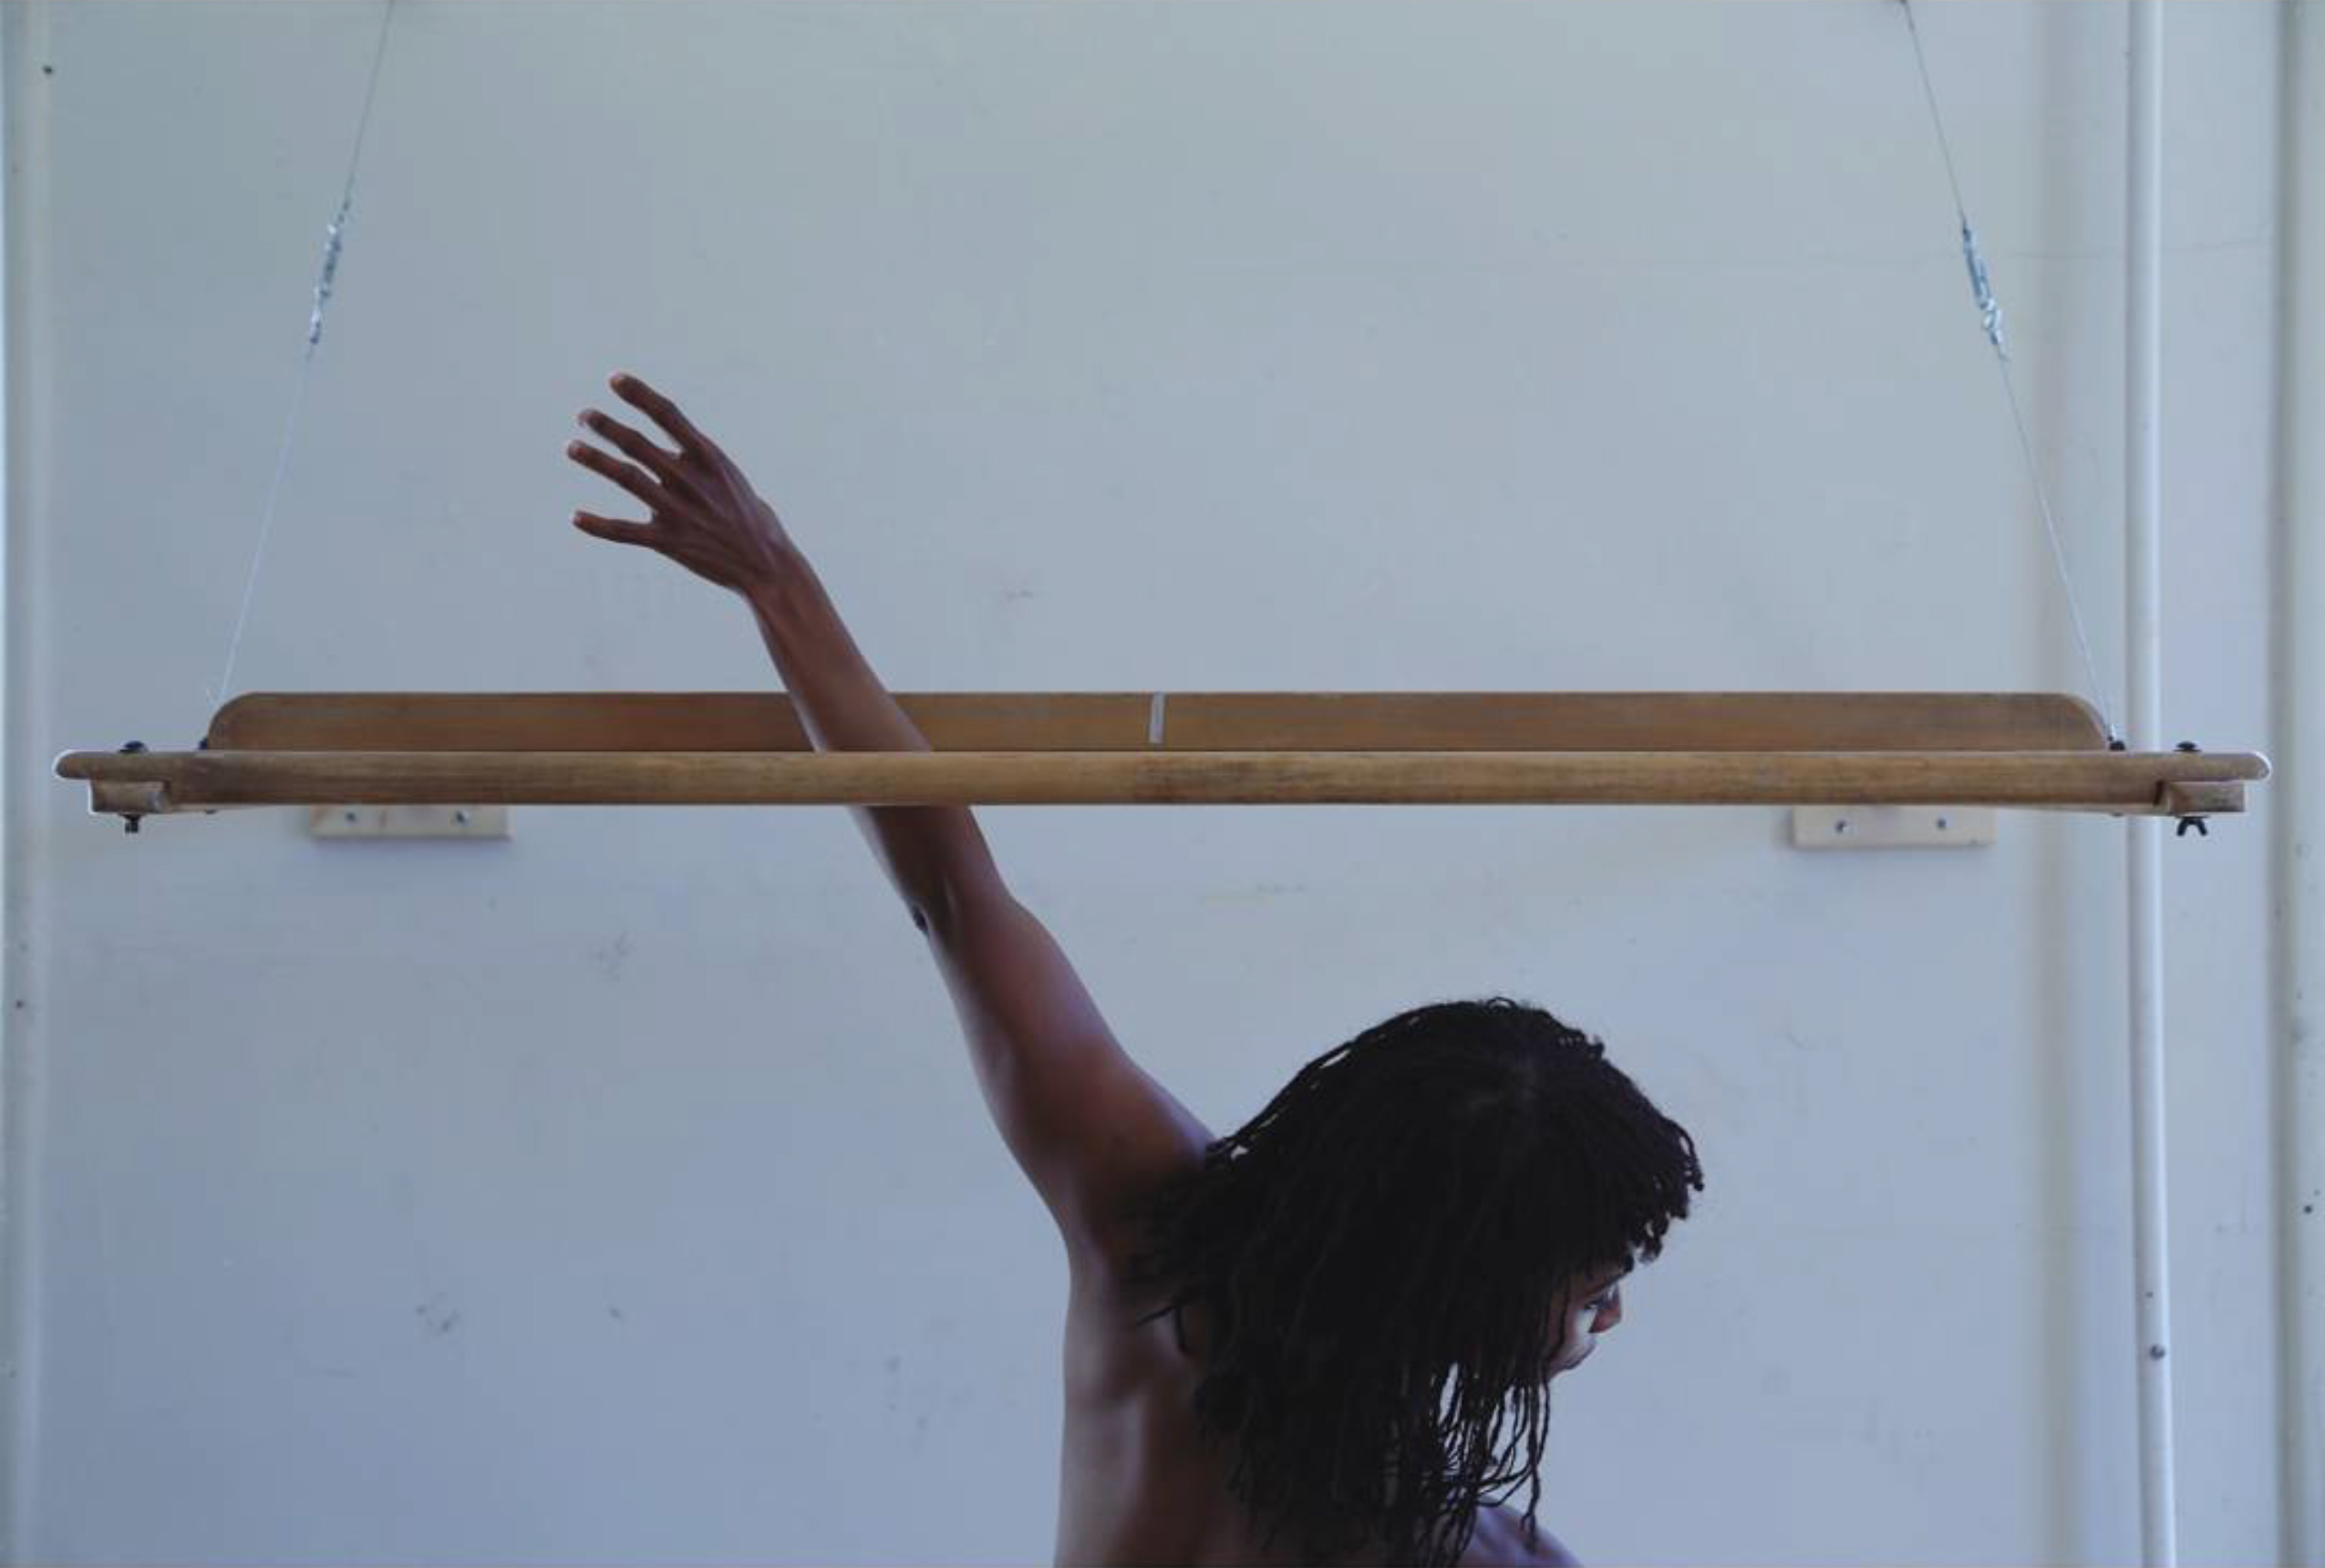 An image from Indira Allegra's 'Body Warp' series, produced while in residence at Headlands Center for the Arts.